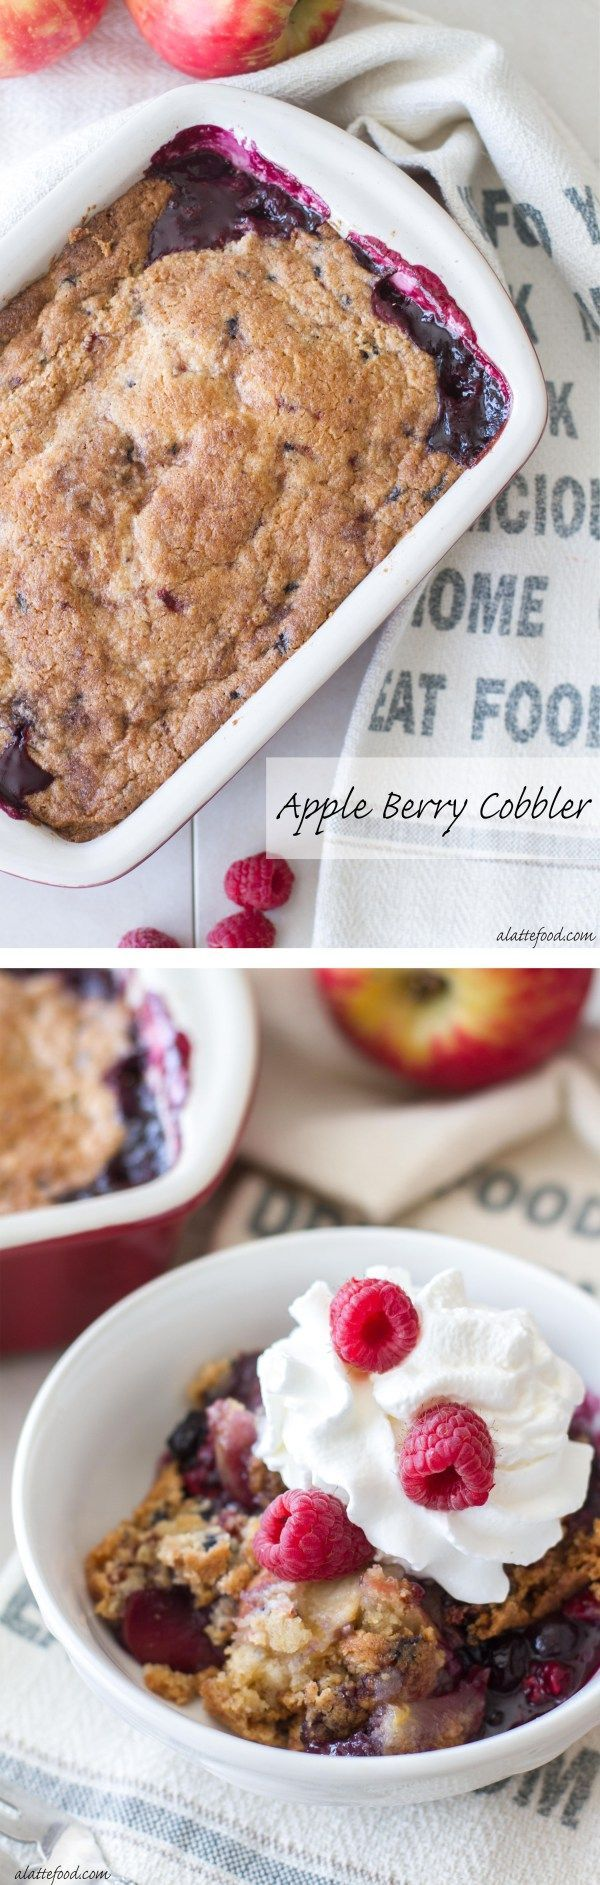 Apple Berry Cobbler | This easy cobbler recipe is full of juicy apples, mixed berries, and topped with a sweet and simple cobbler muffin mix topping!